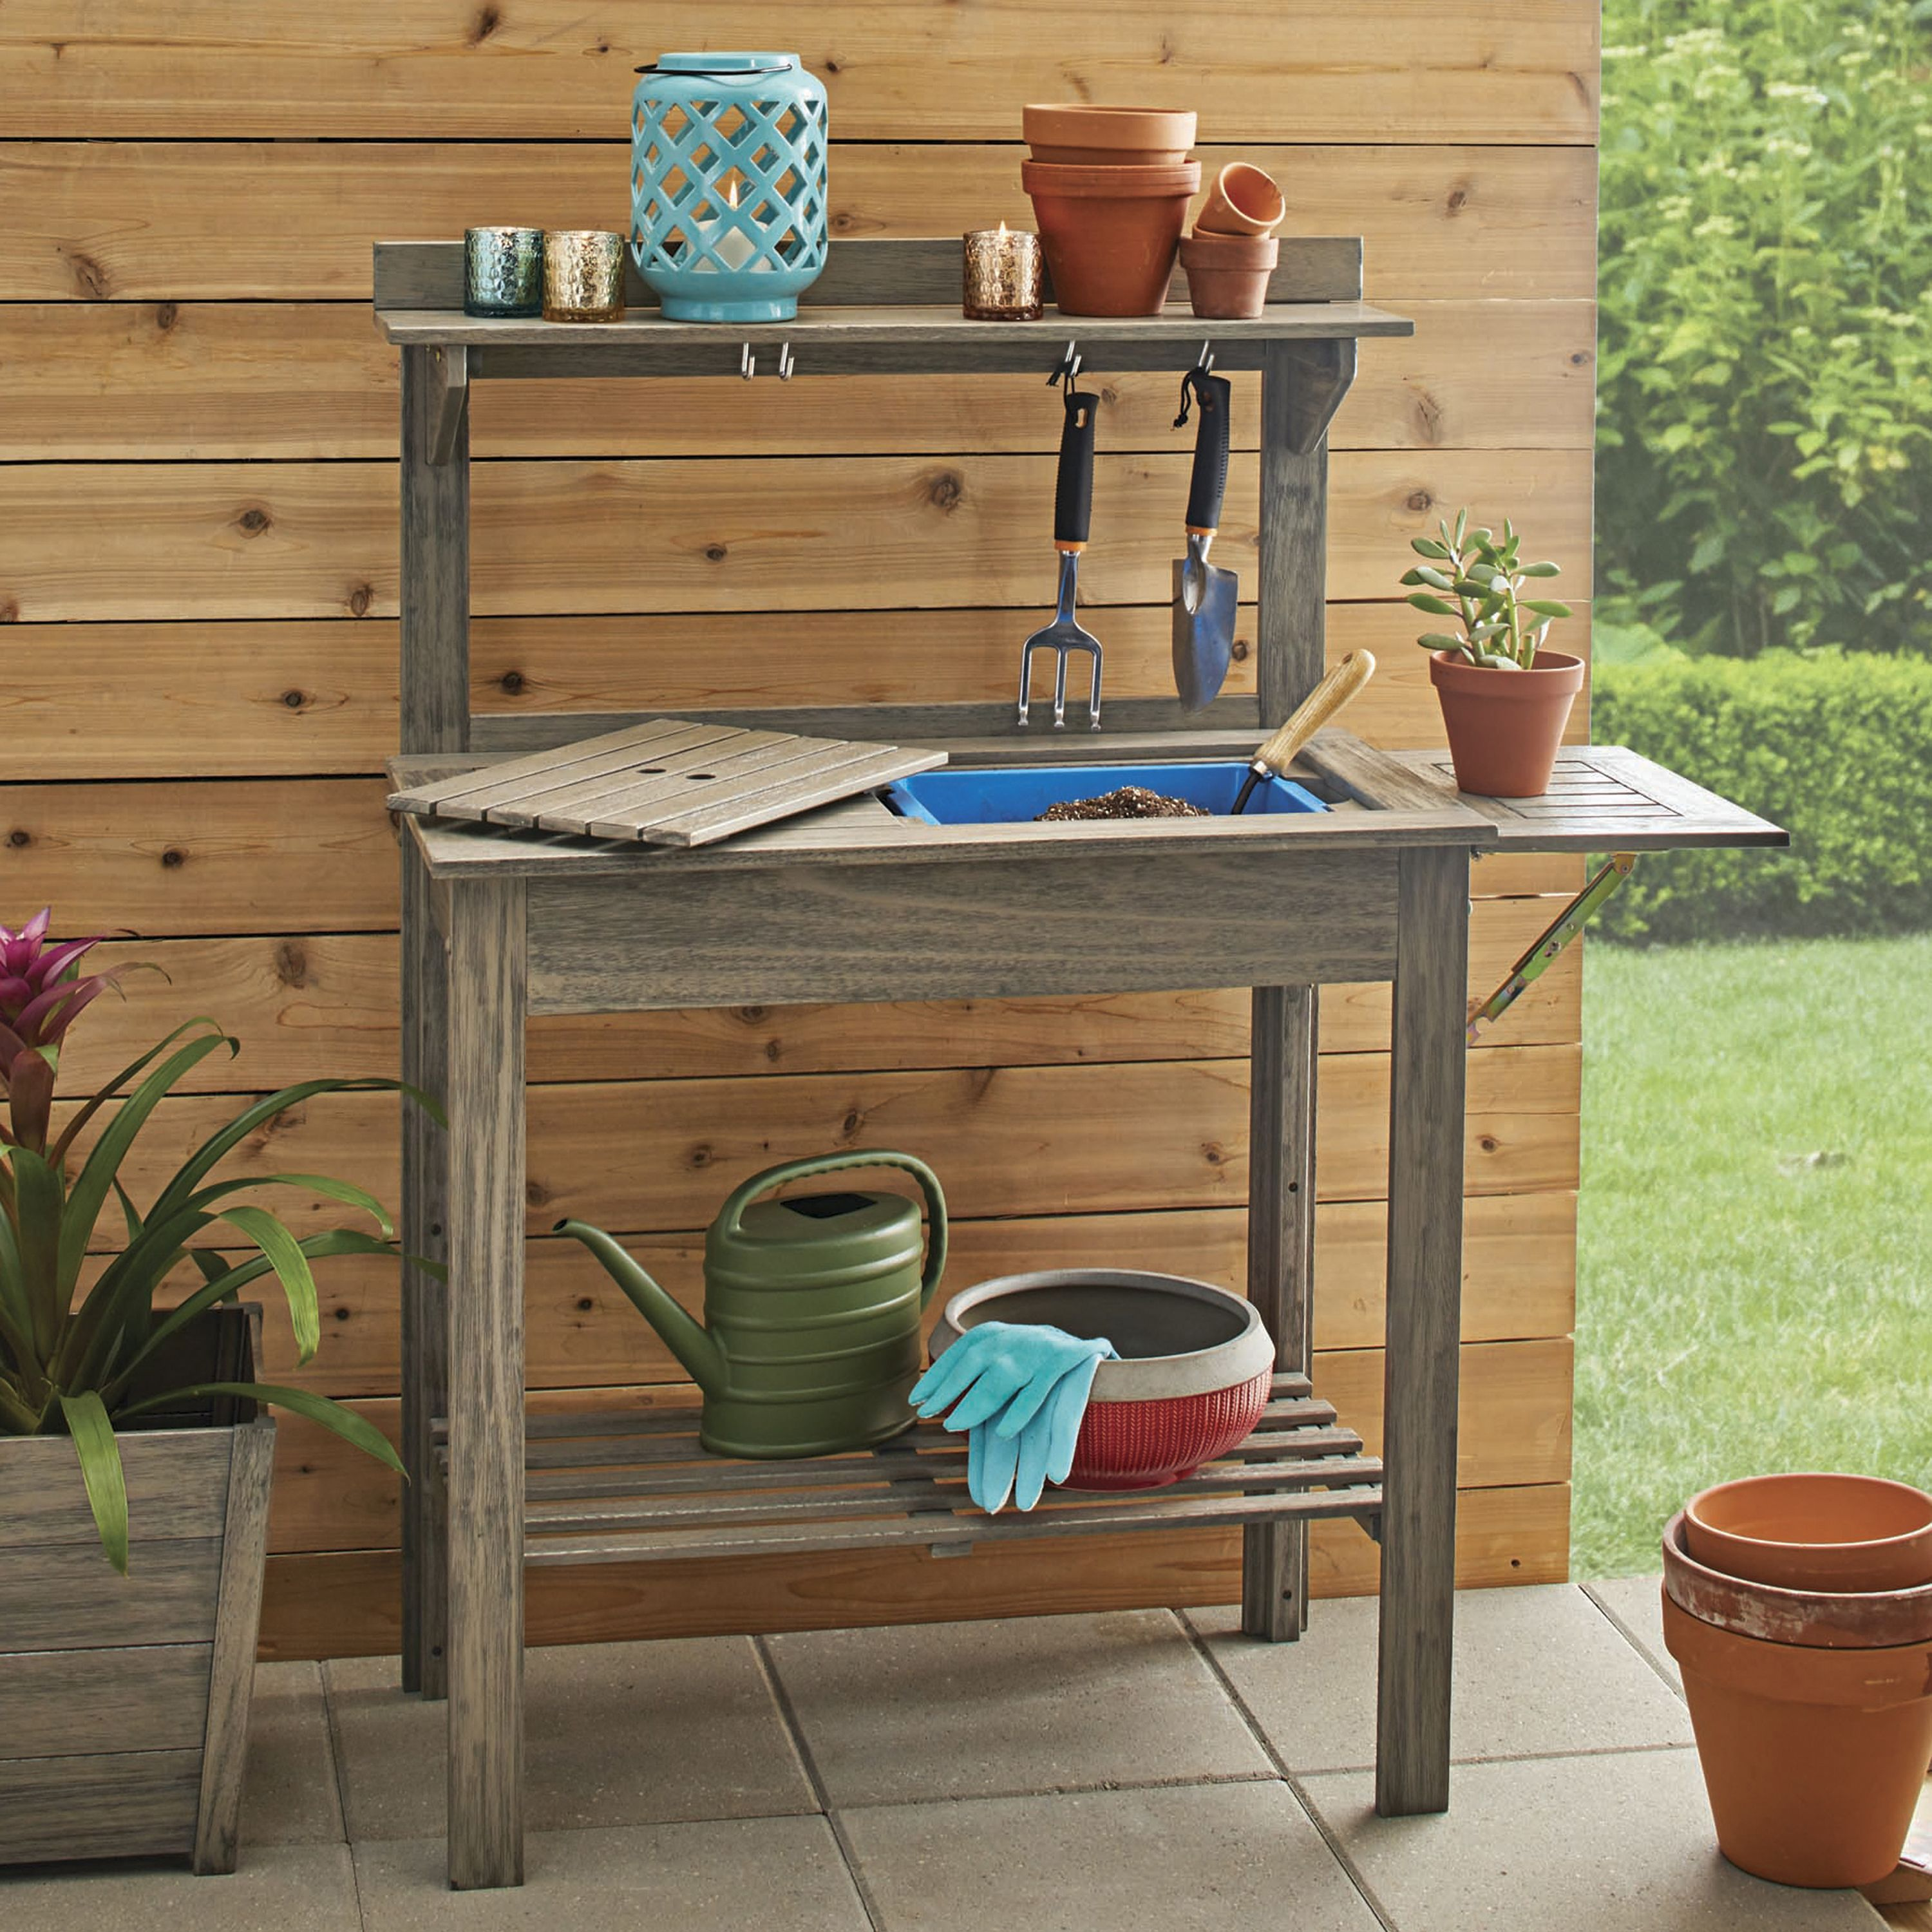 Garden Potting Bench: Better Homes & Gardens Cane Bay Outdoor Potting Bench